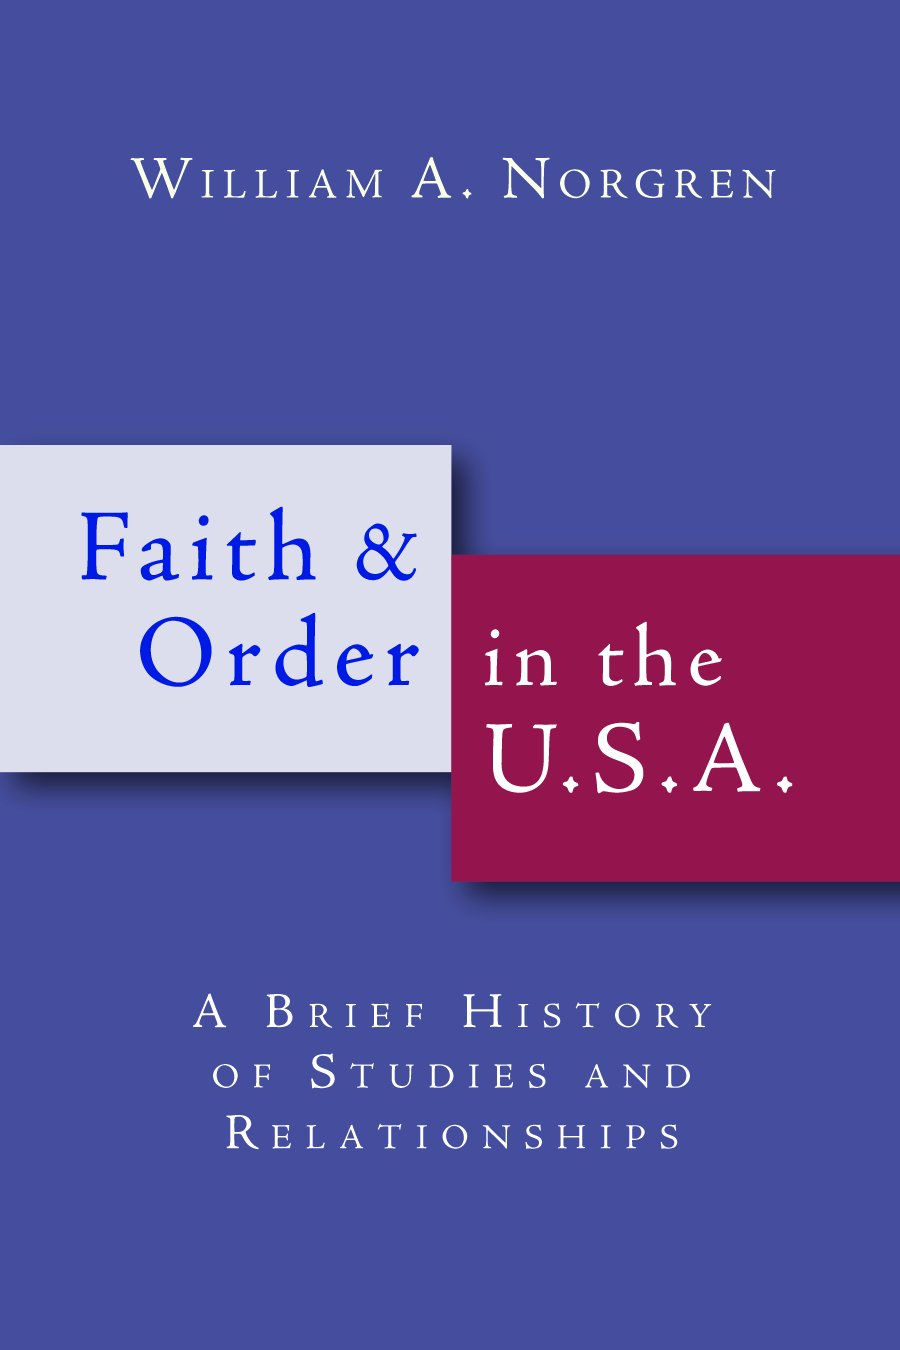 Faith and Order in the U.S.A.: A Brief History of Studies and Relationships